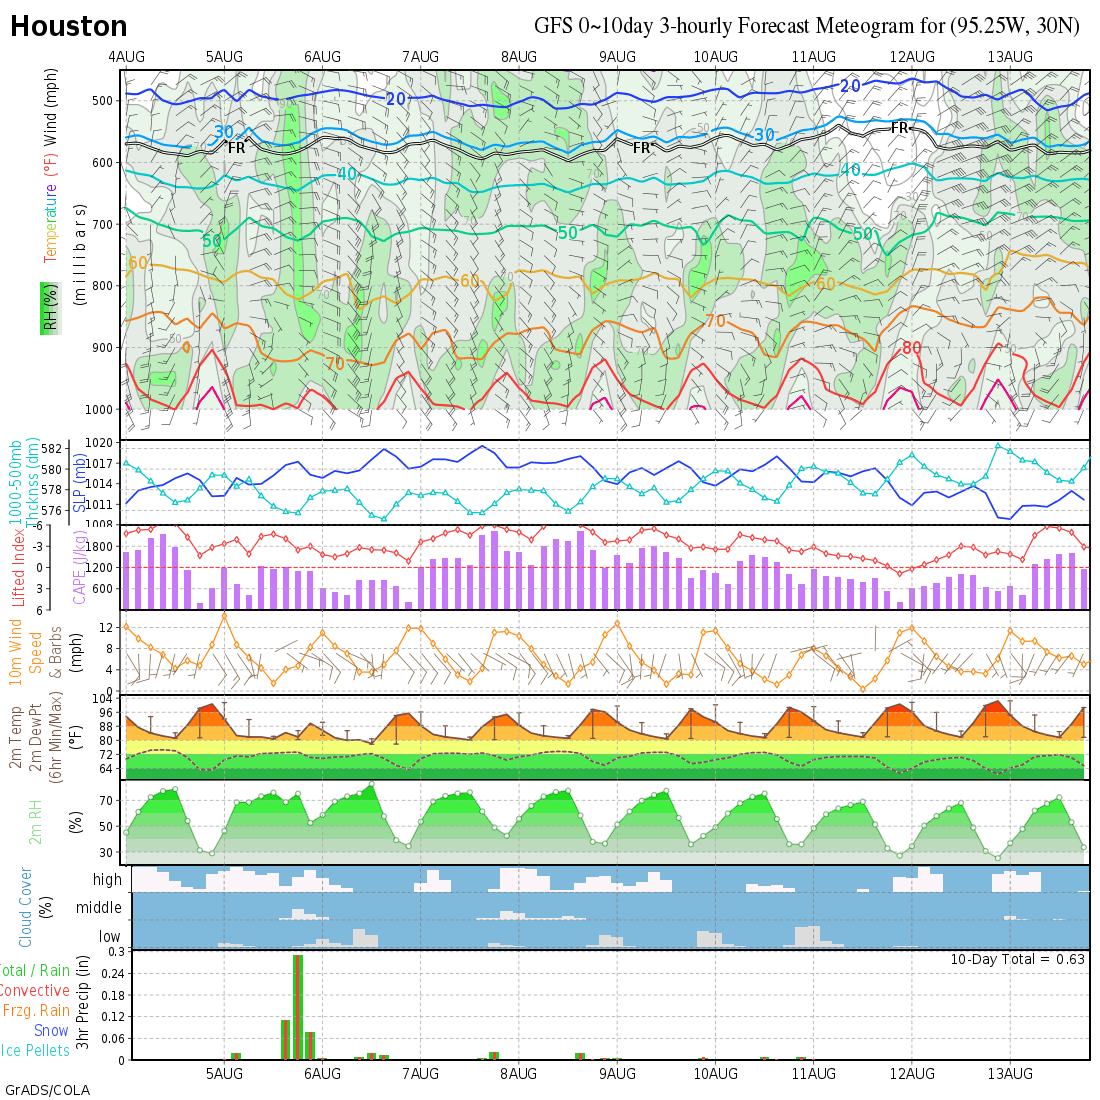 GFS Shortrange Forcast